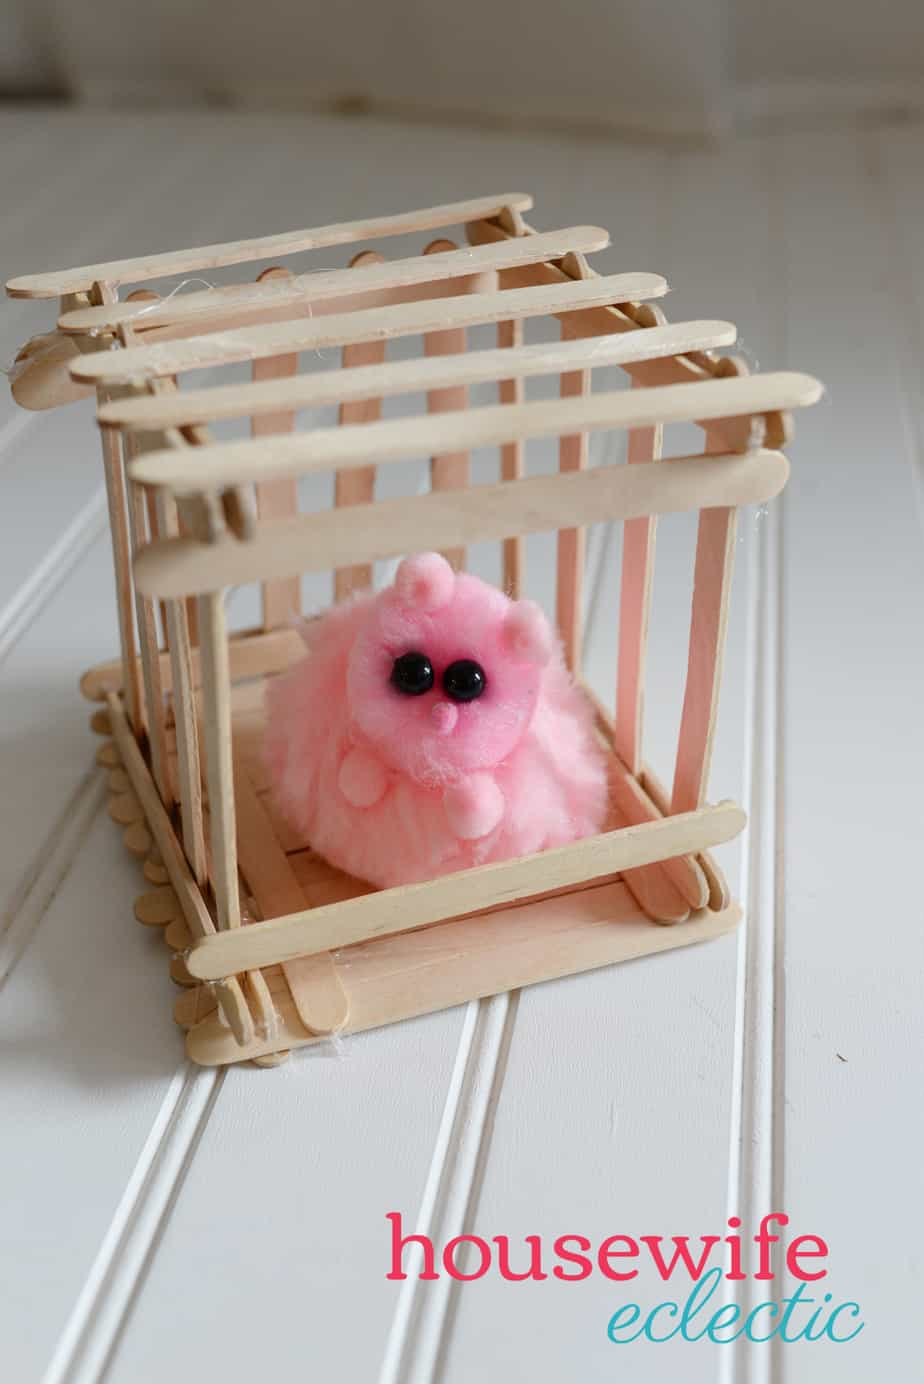 Housewife Eclectic: DIY Pygmy Puff with Popsicle Stick Cage